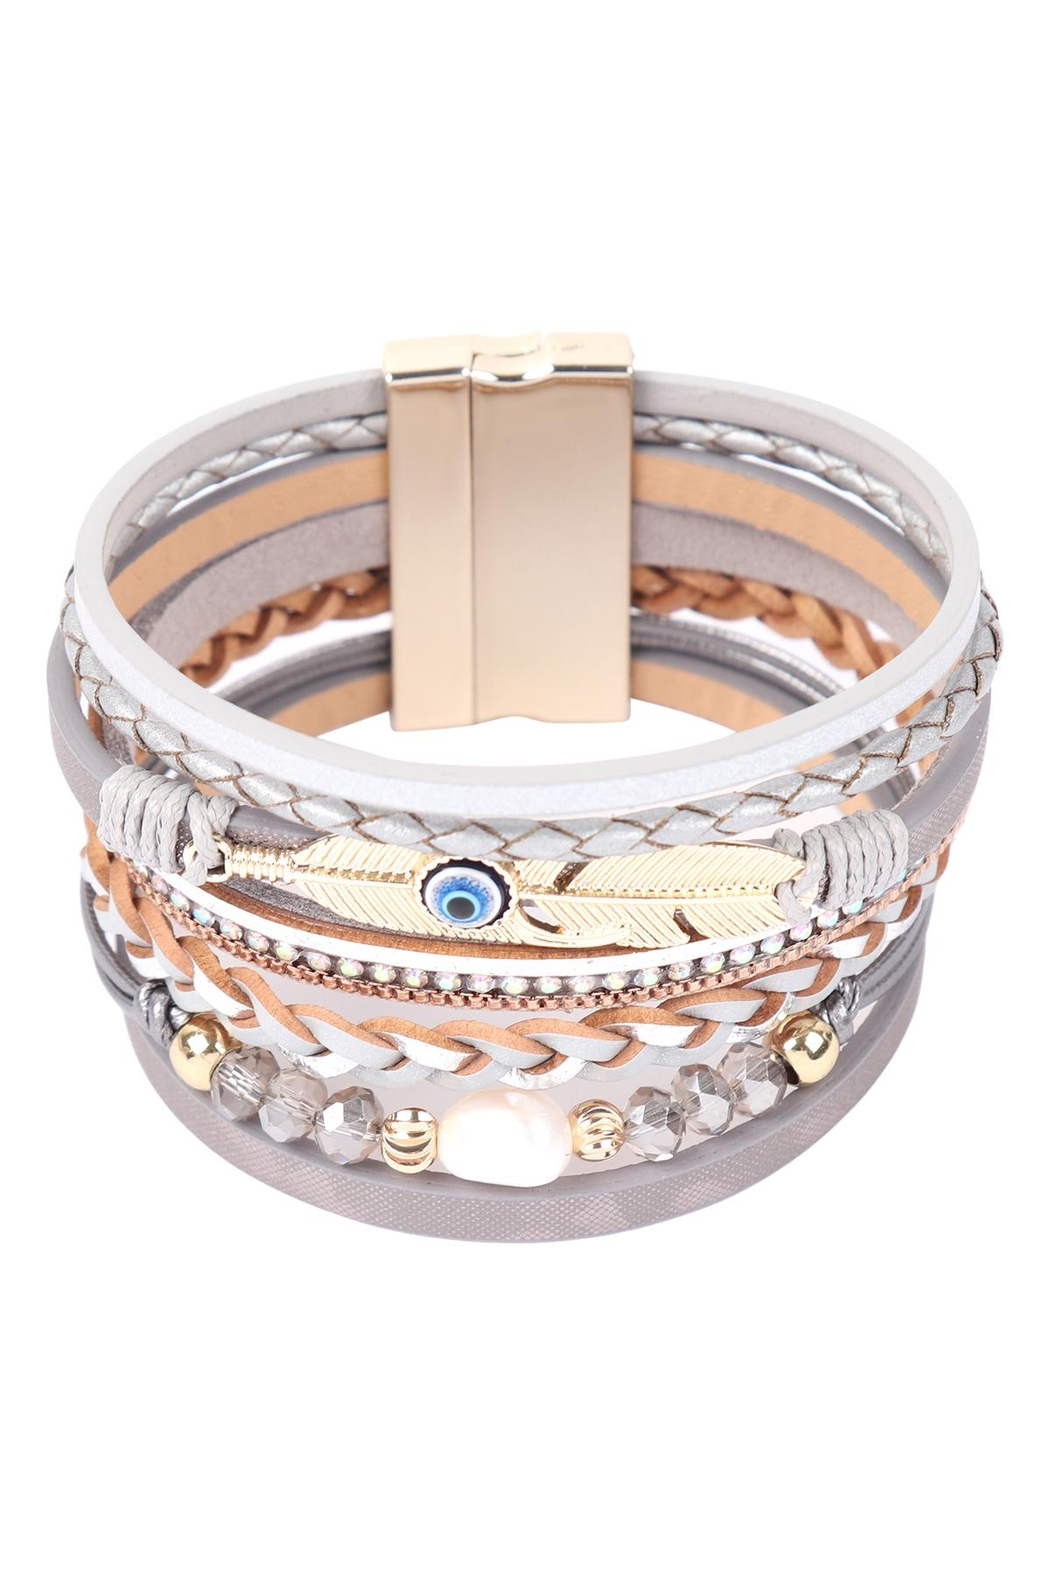 Riah Fashion Leather-Bracelet-With-Feather-And-Evil-Eye-Charm - Front Full Image